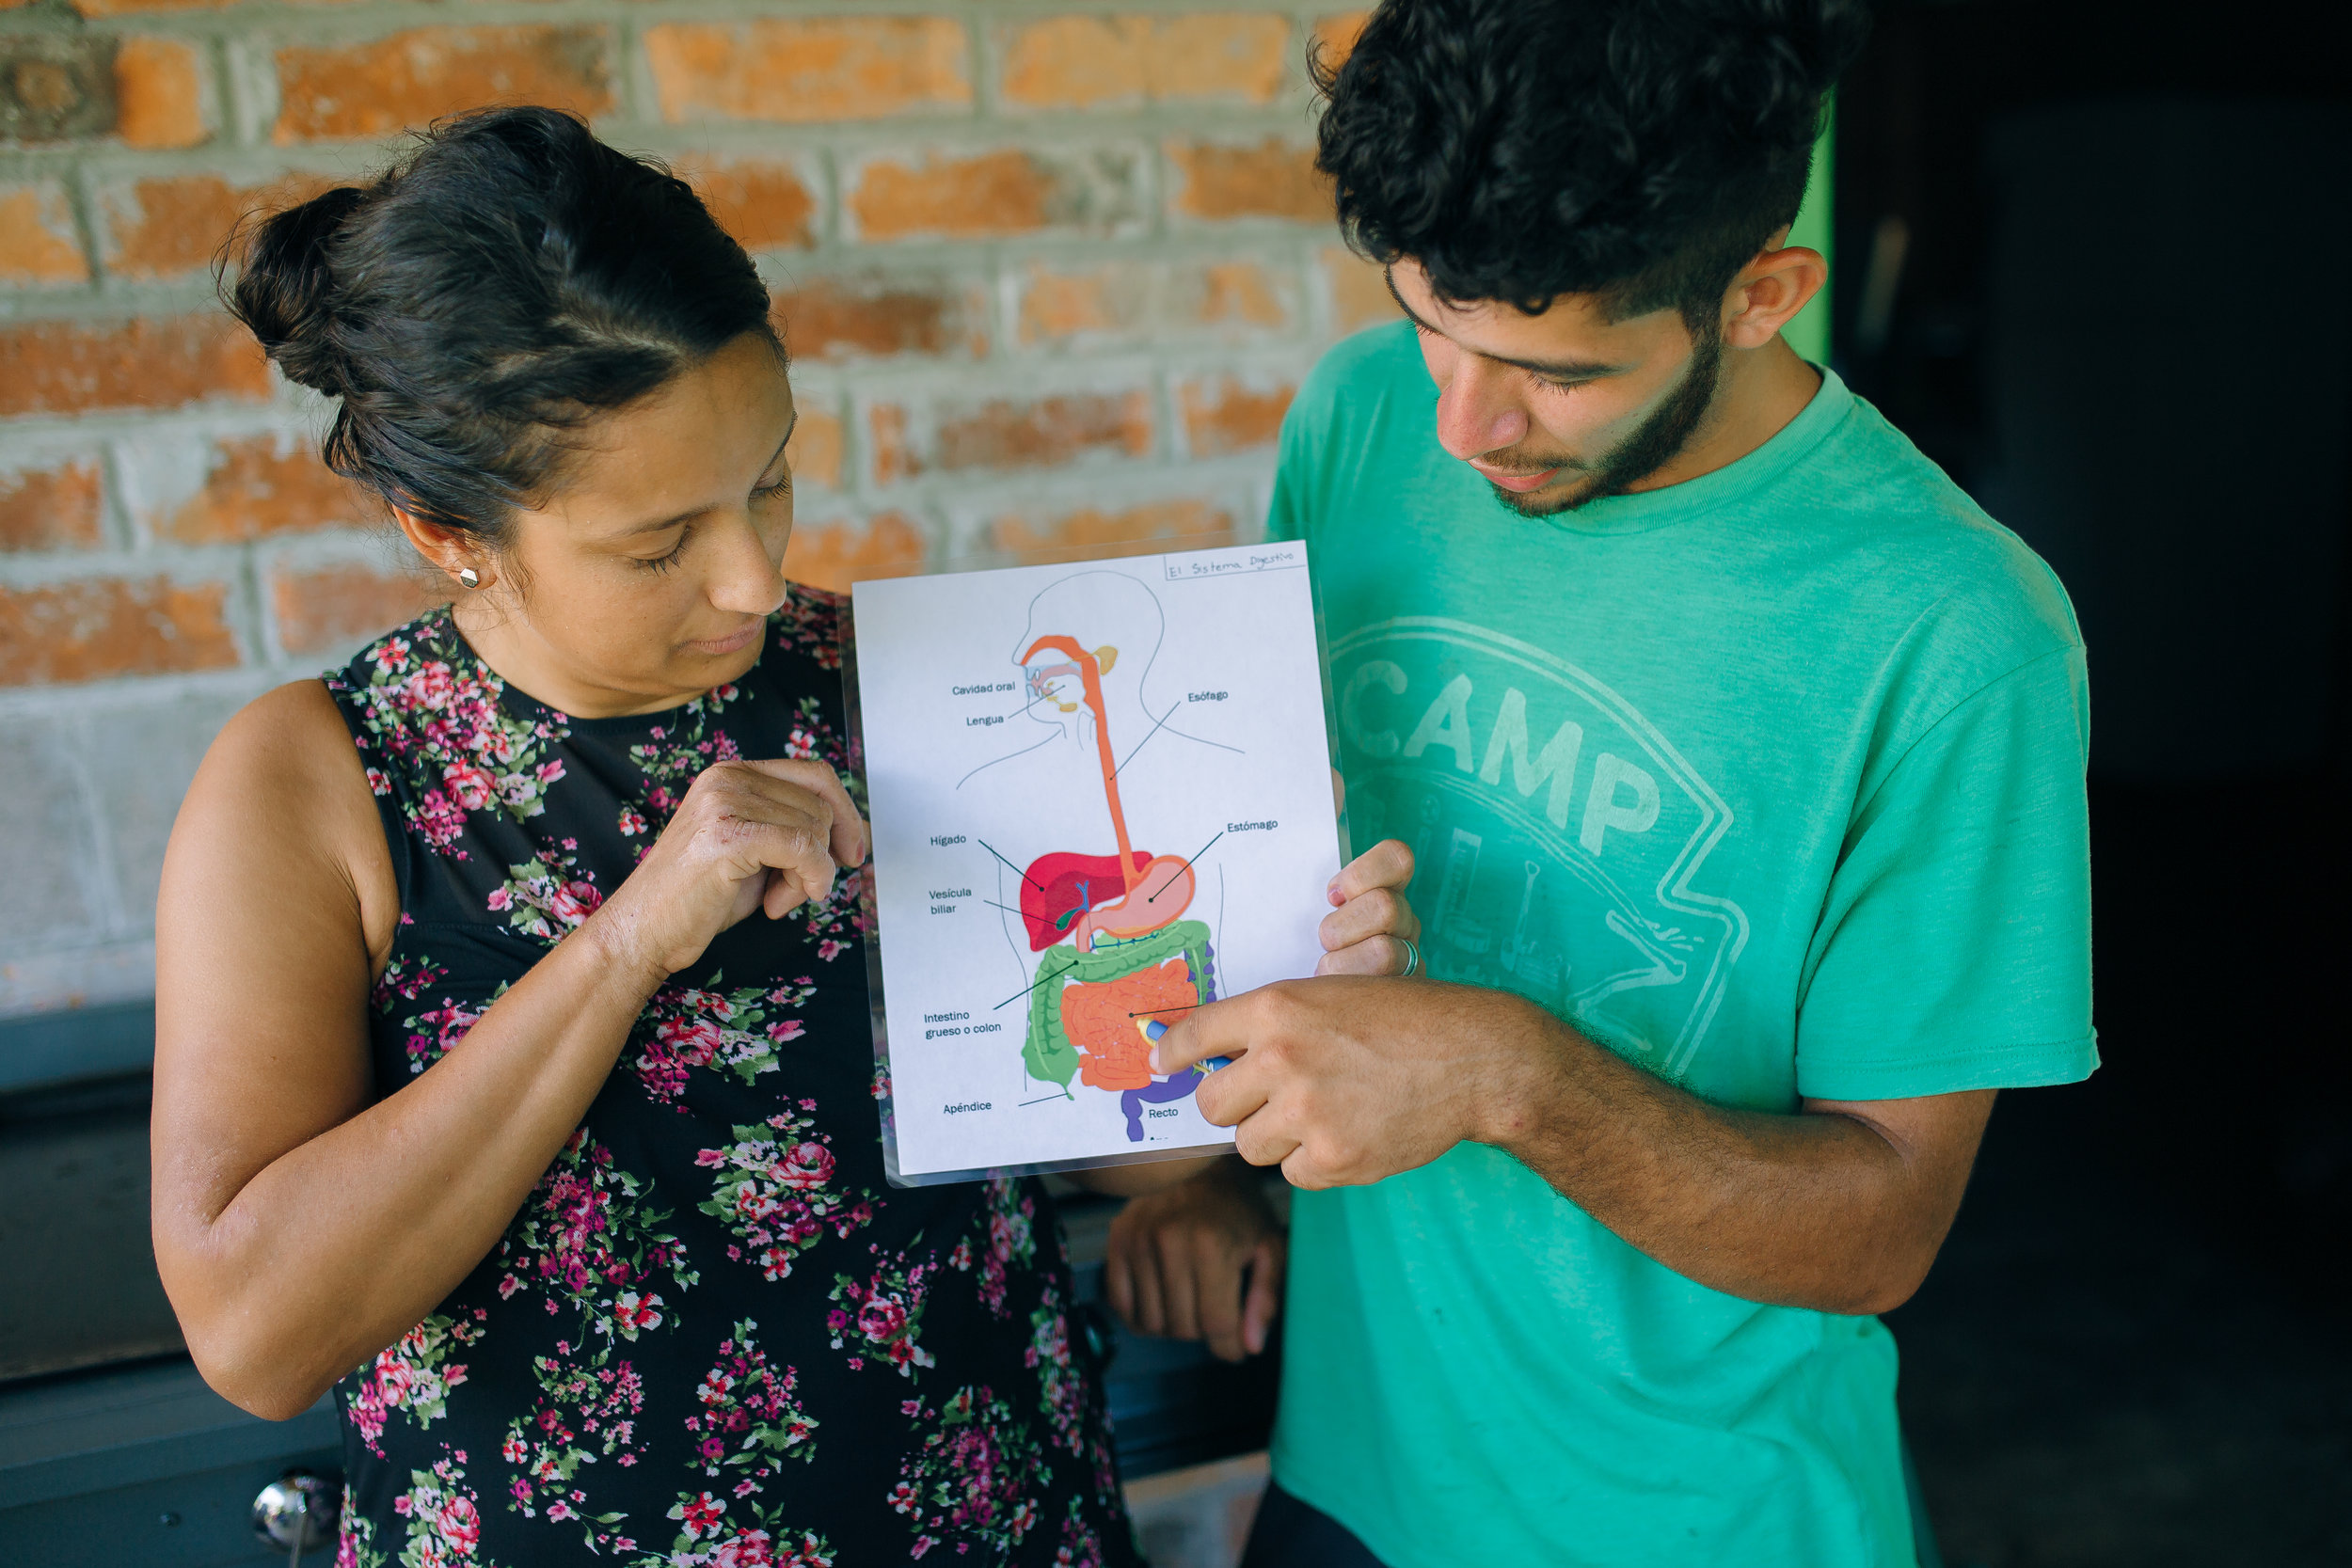 Anatomy made its way into the seminar, how could it not? Knowing how food affects your body is a crucial point in connecting nutrition to gut health. Amilcar (R) was asked to demonstrate what he had learned about the digestive system while Ninfa (L) translated.